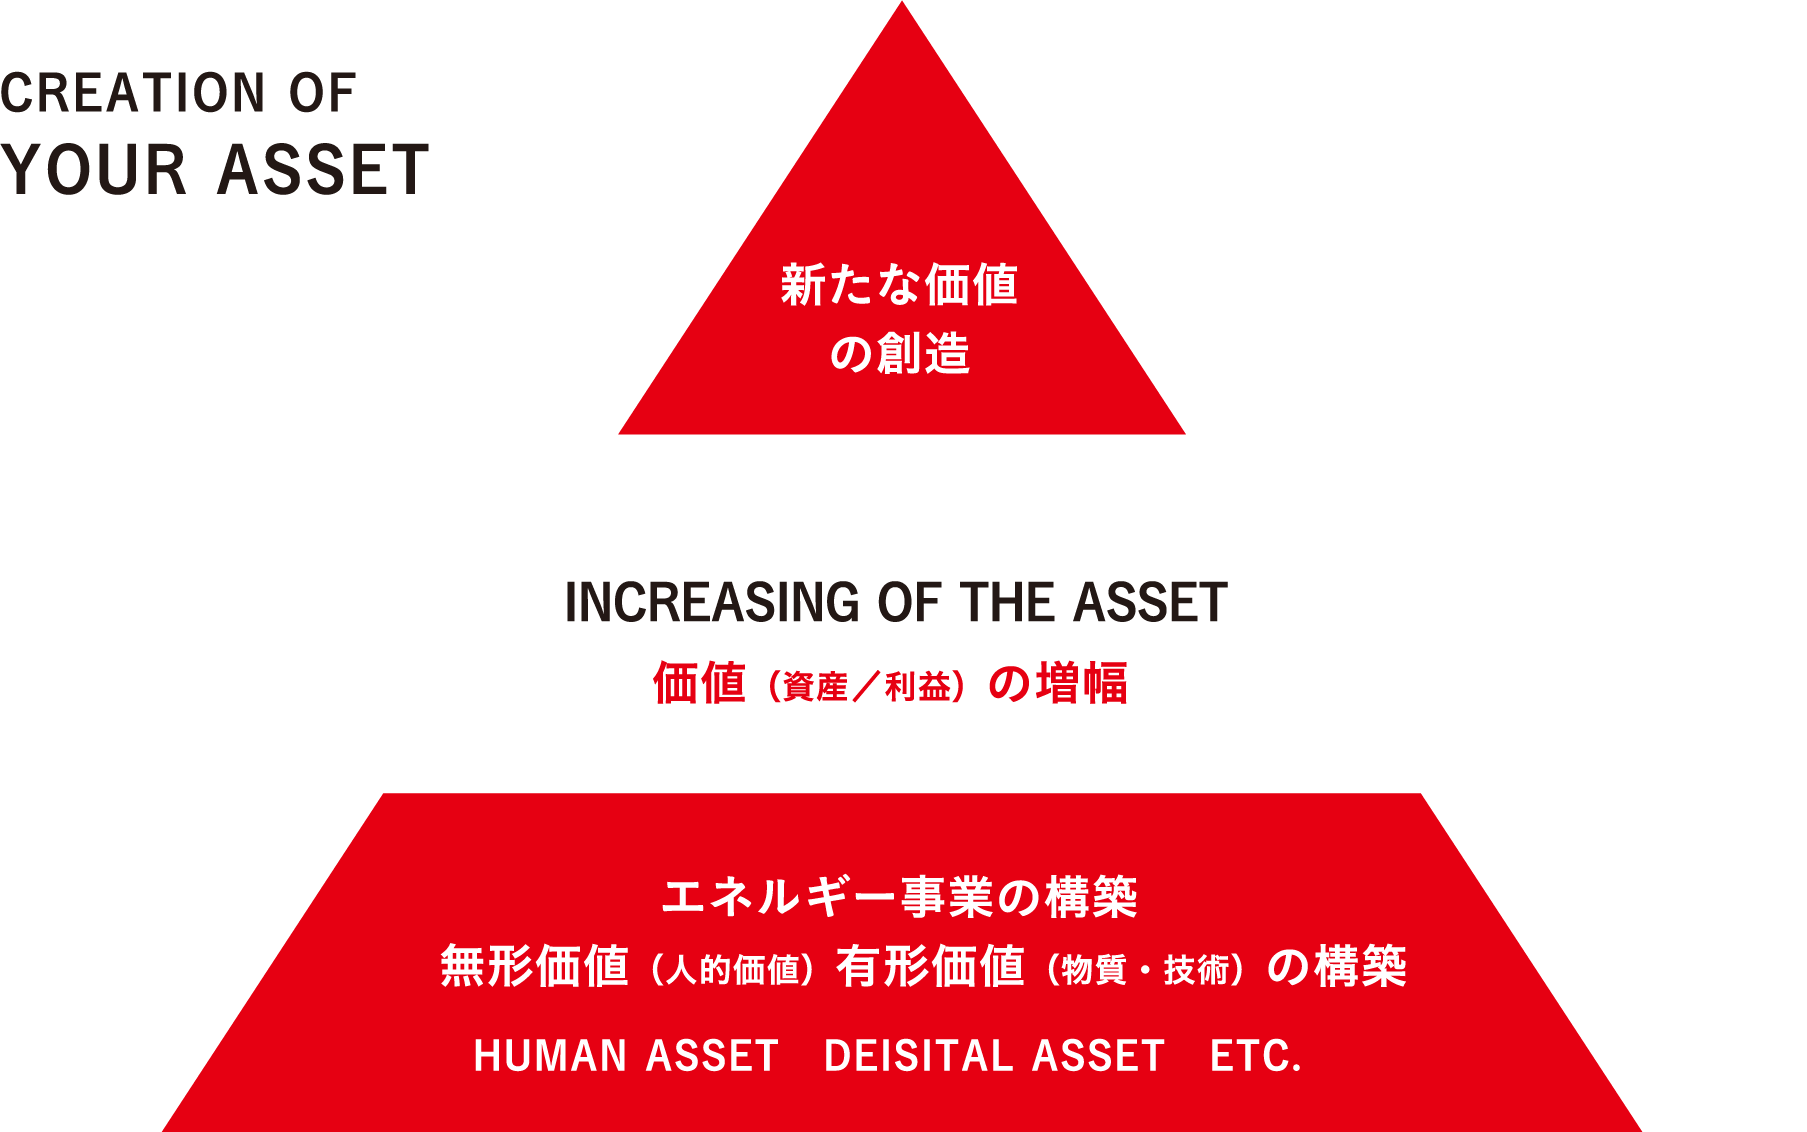 CREATION OF YOUR ASSET